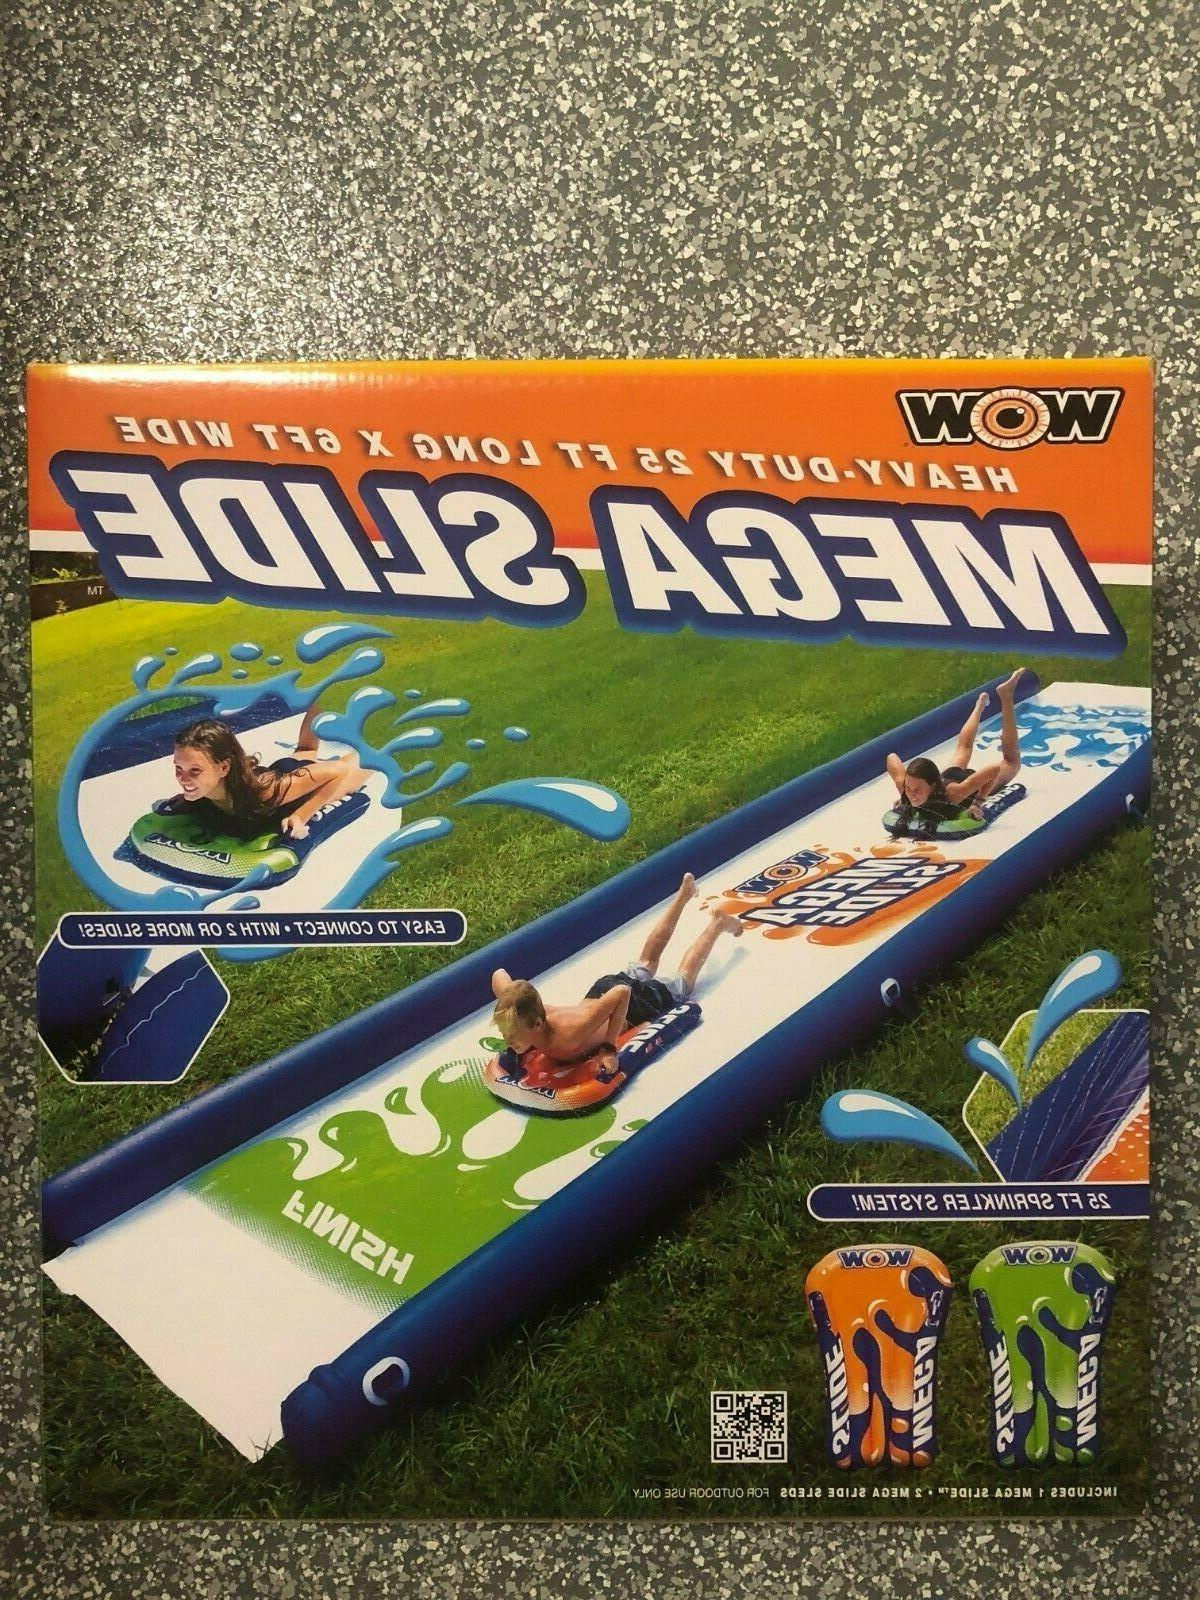 Brand Water Slide Fun with sleds